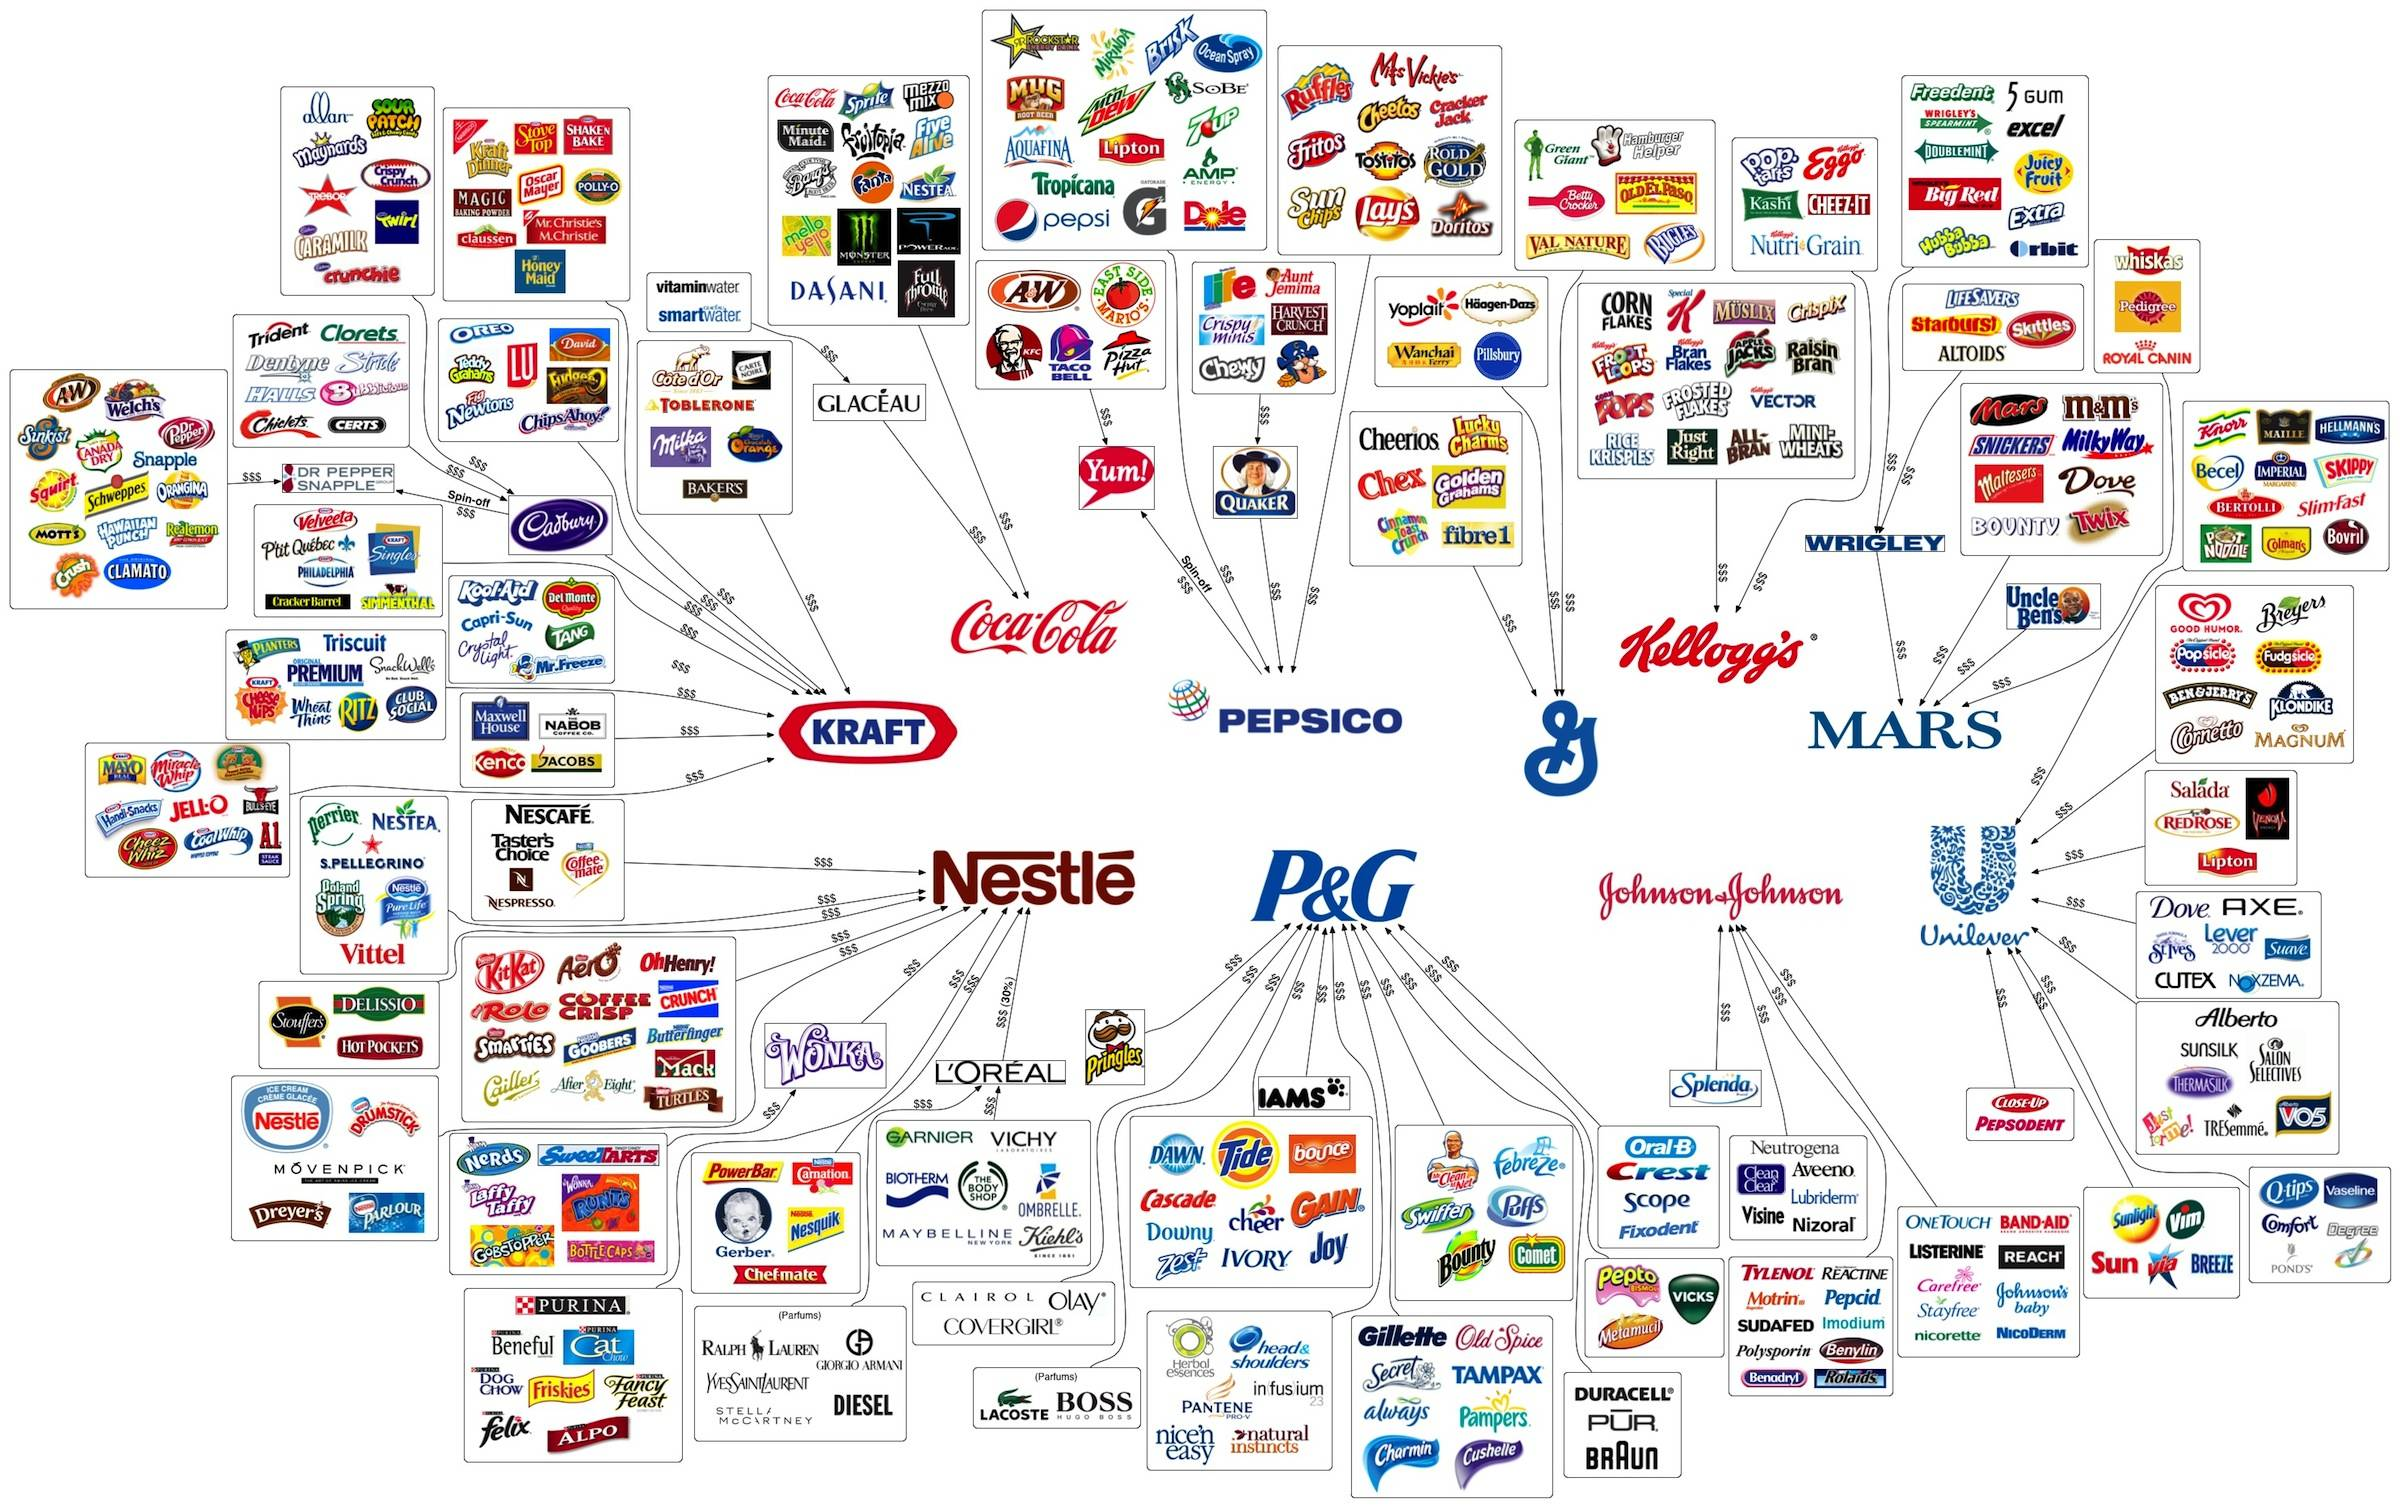 Who owns justice clothing stores